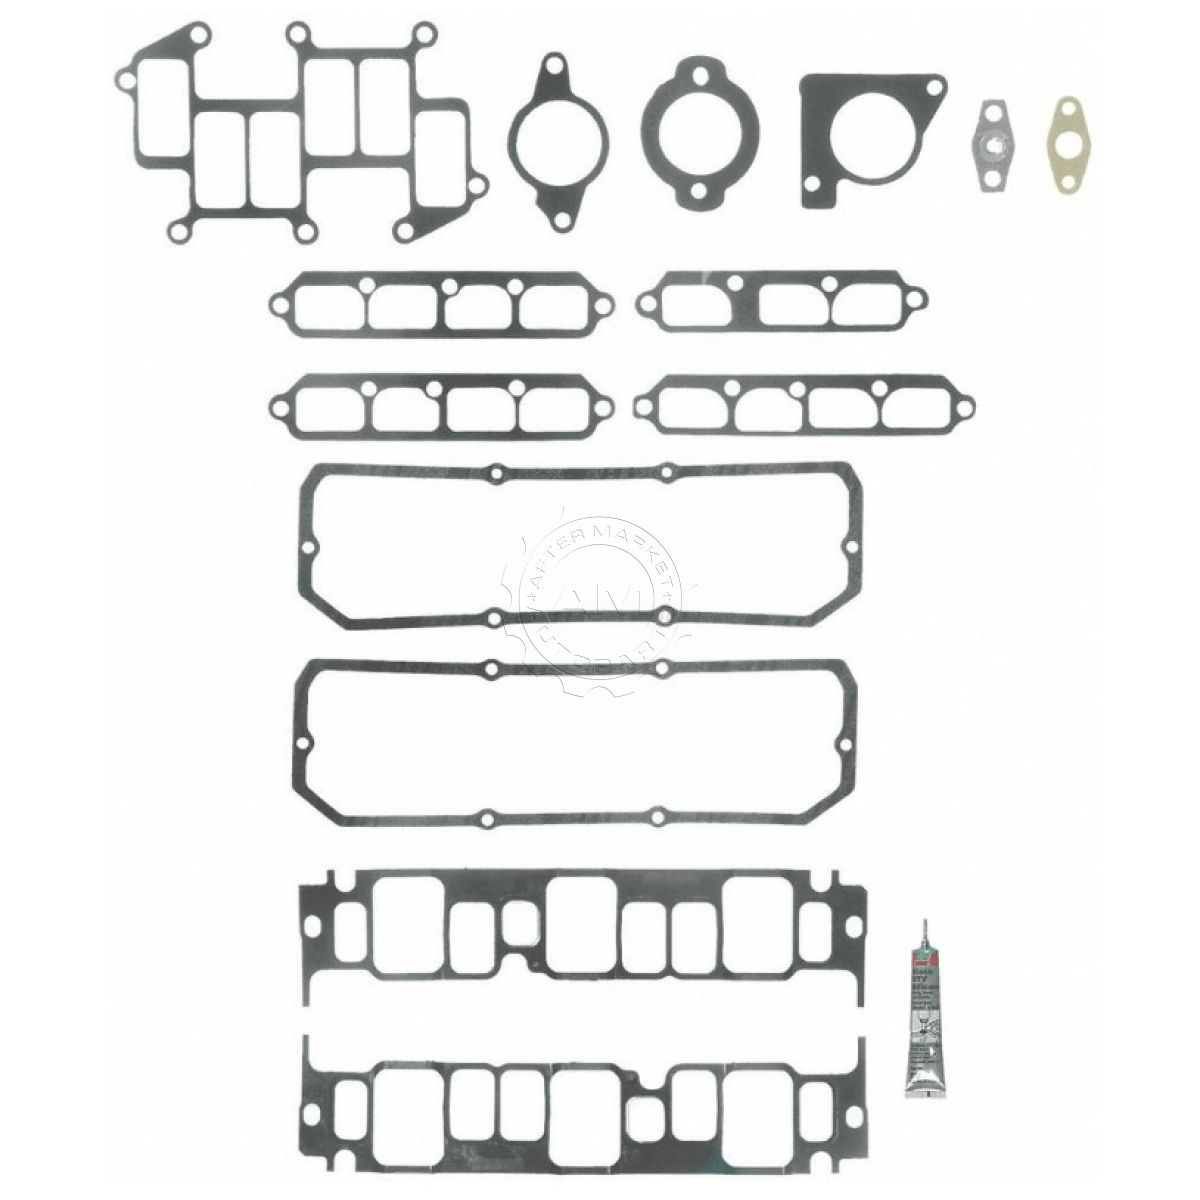 felpro ms93020 intake manifold gasket kit set for chevy pontiac buick 2 8l  3 4l